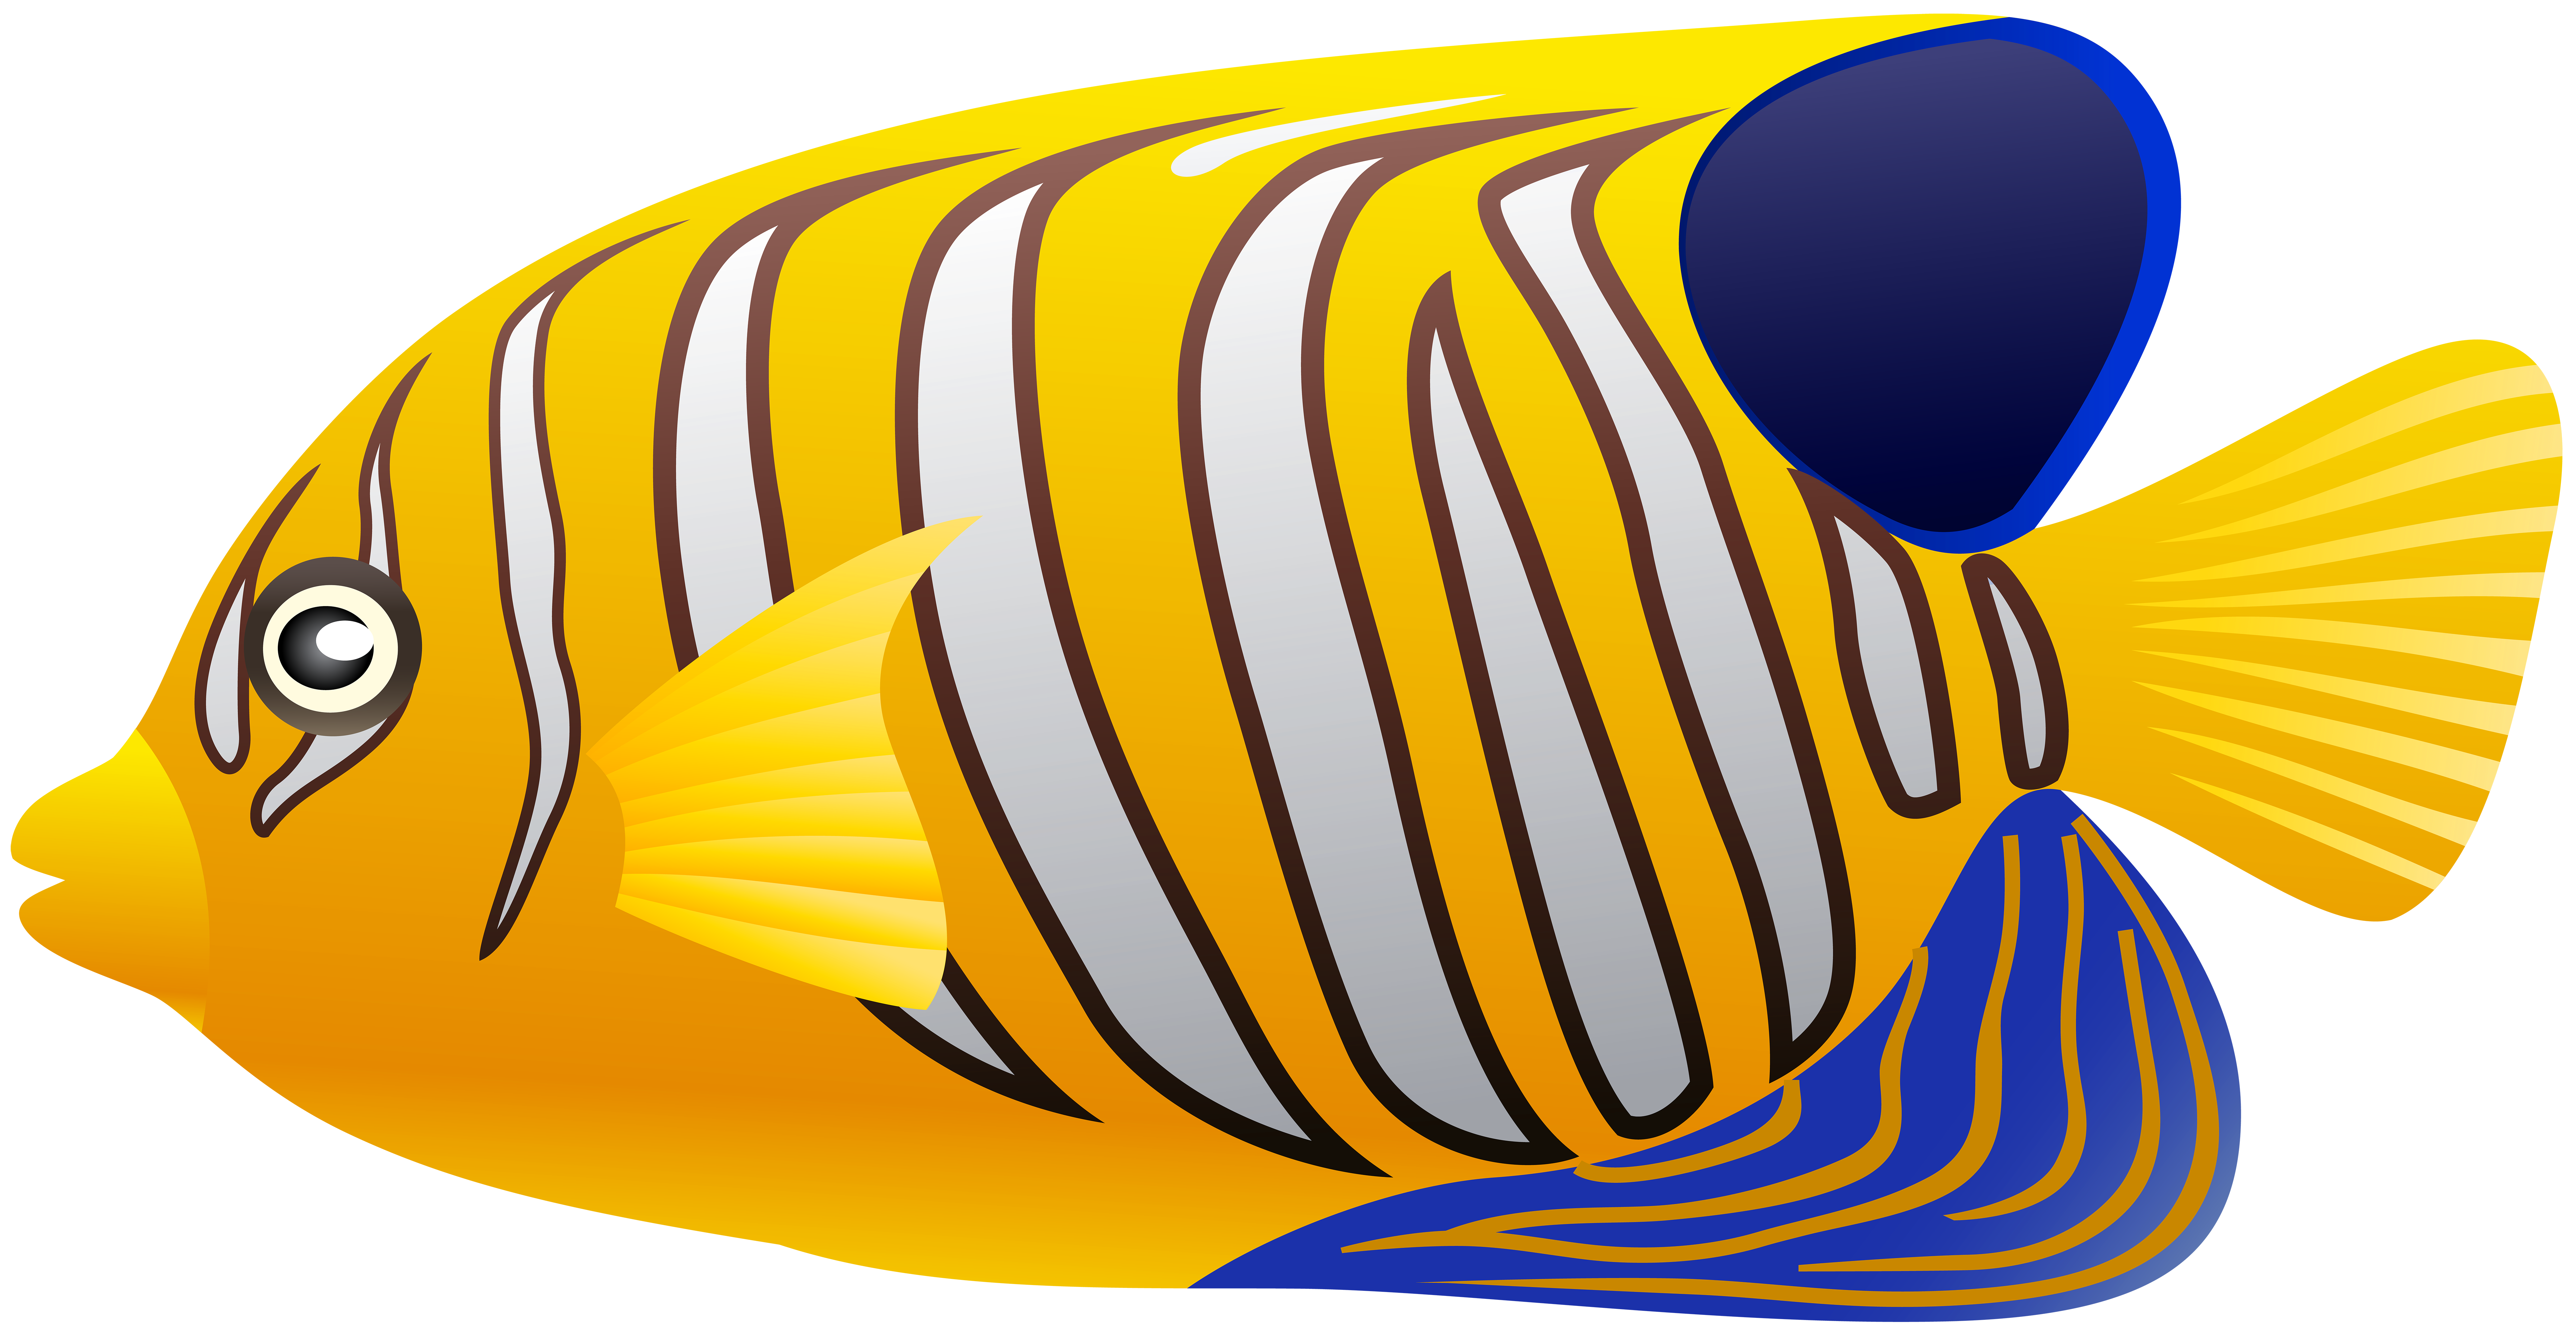 Cleaning fish clipart image free Yellow Fish PNG Clip Art - Best WEB Clipart image free